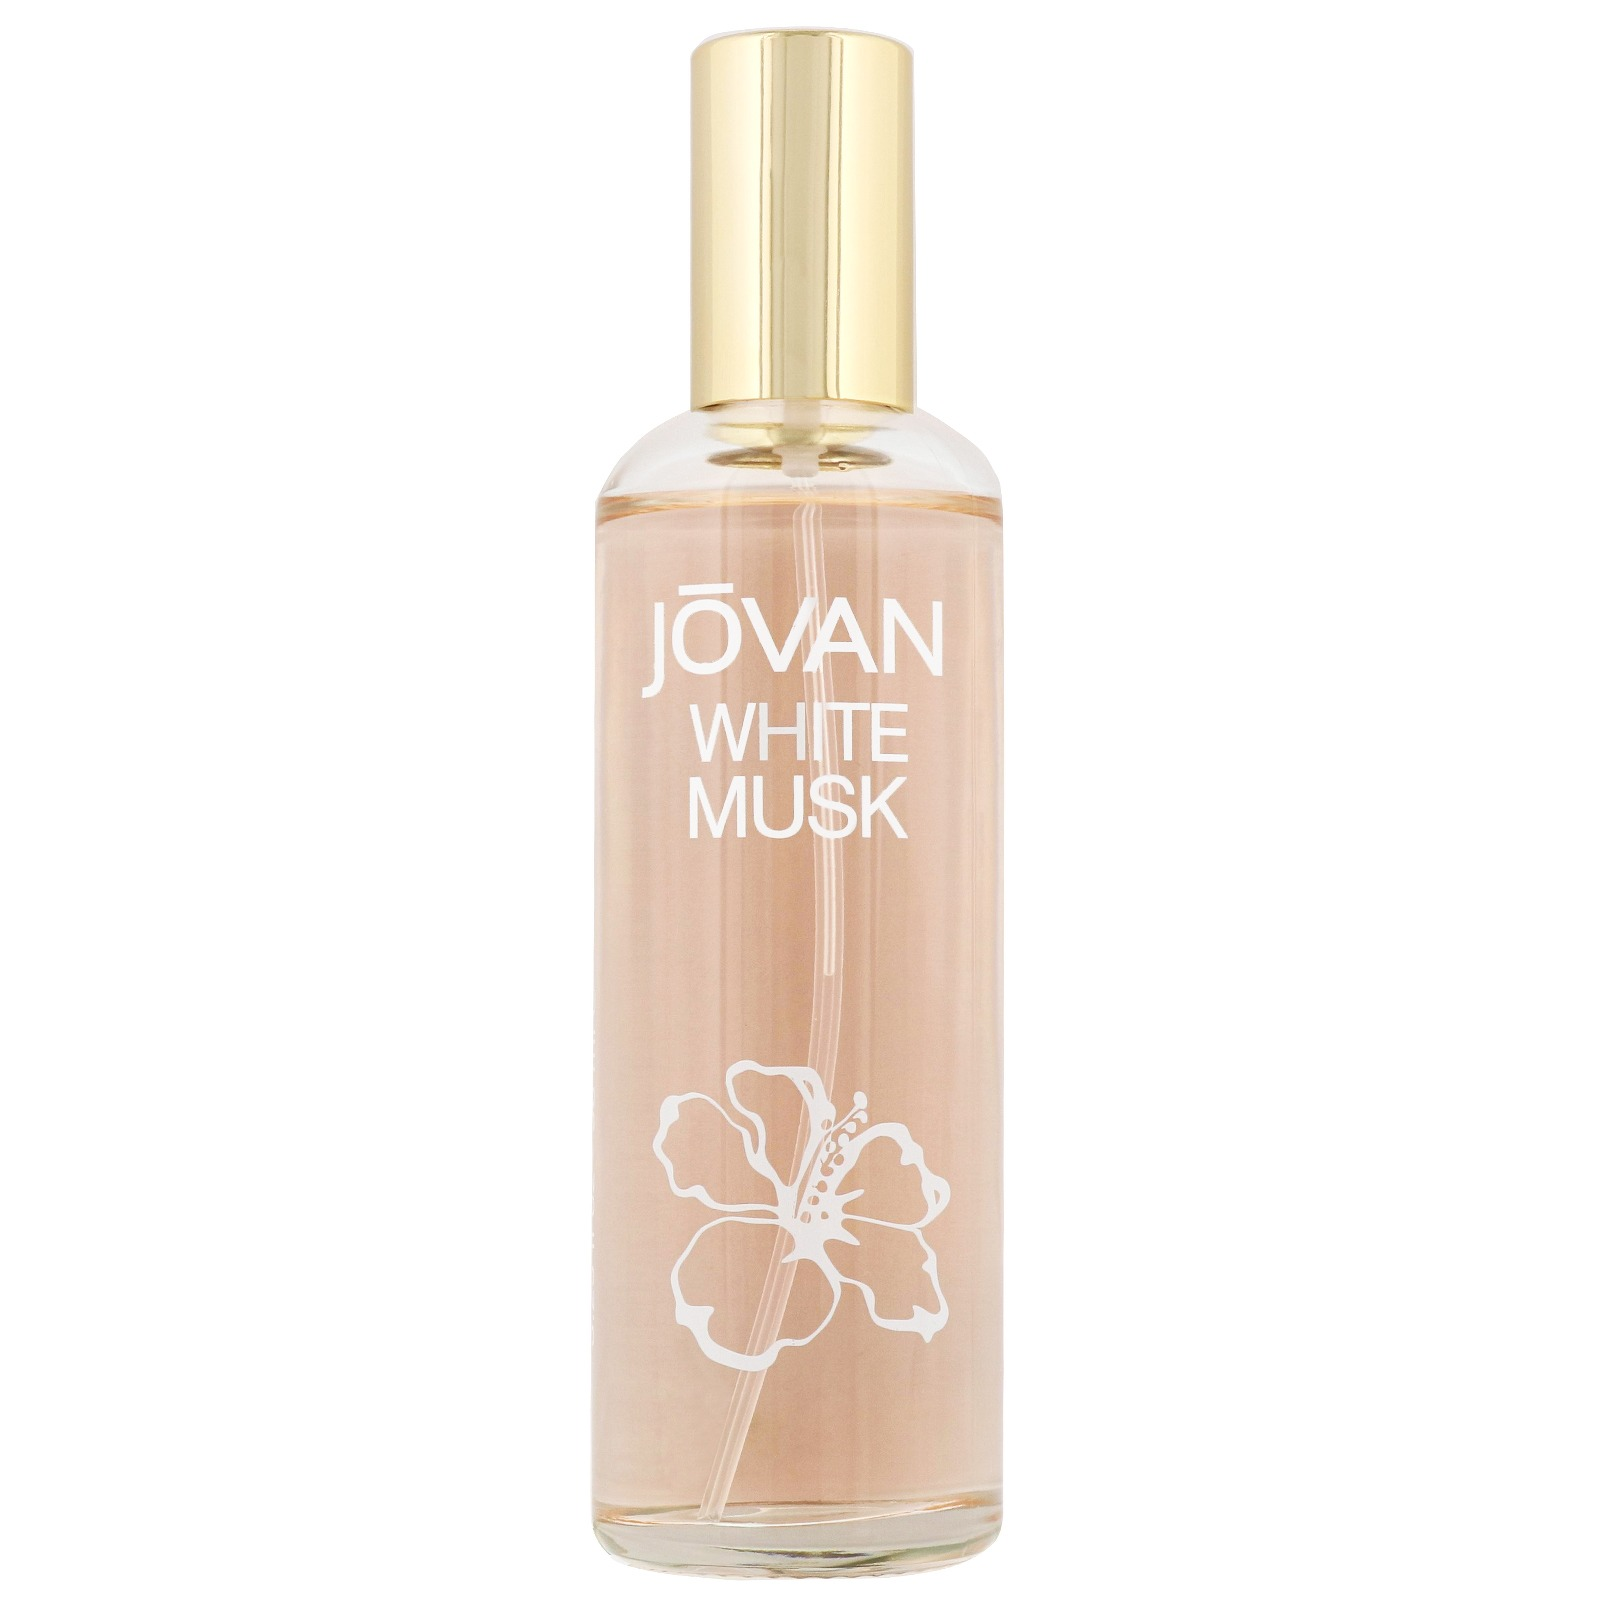 Jovan White Musk For Women Cologne Spray 96ml